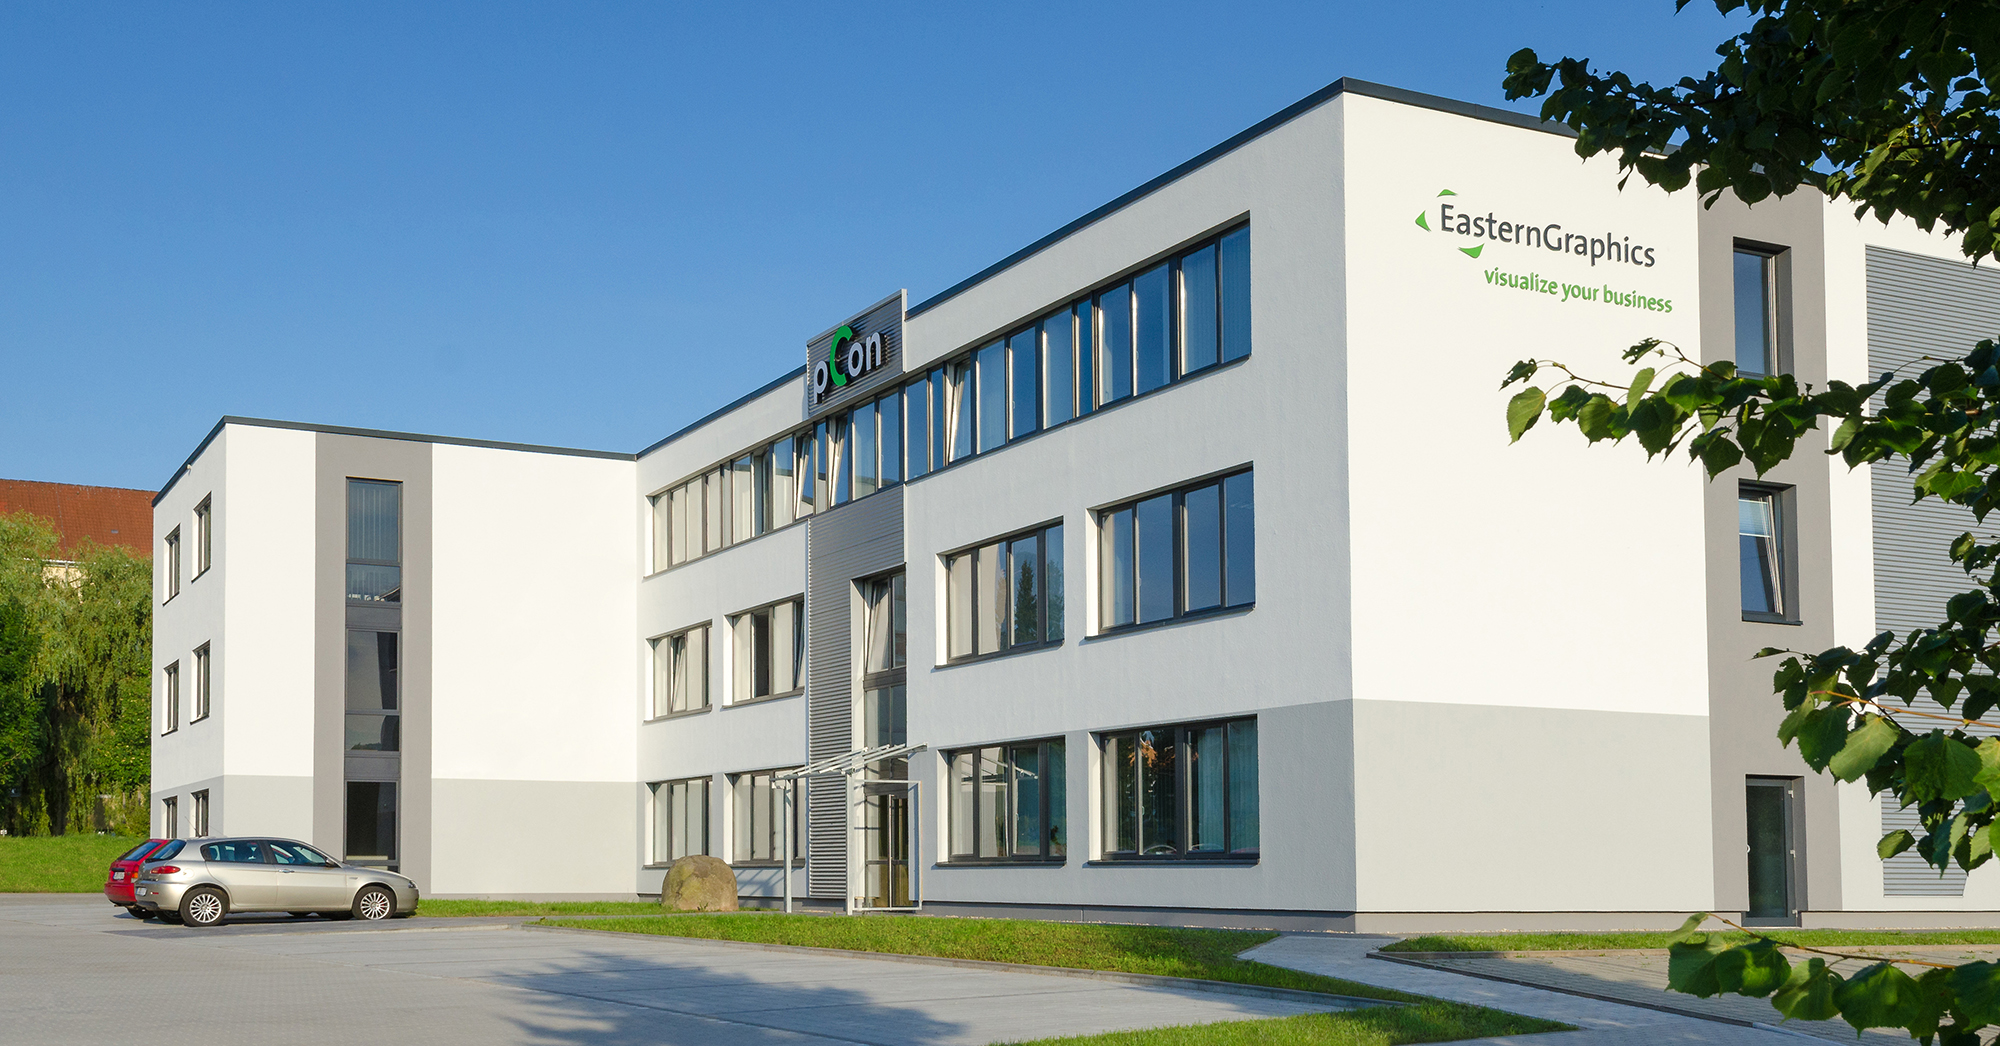 EasternGraphics GmbH - More room for more creativity